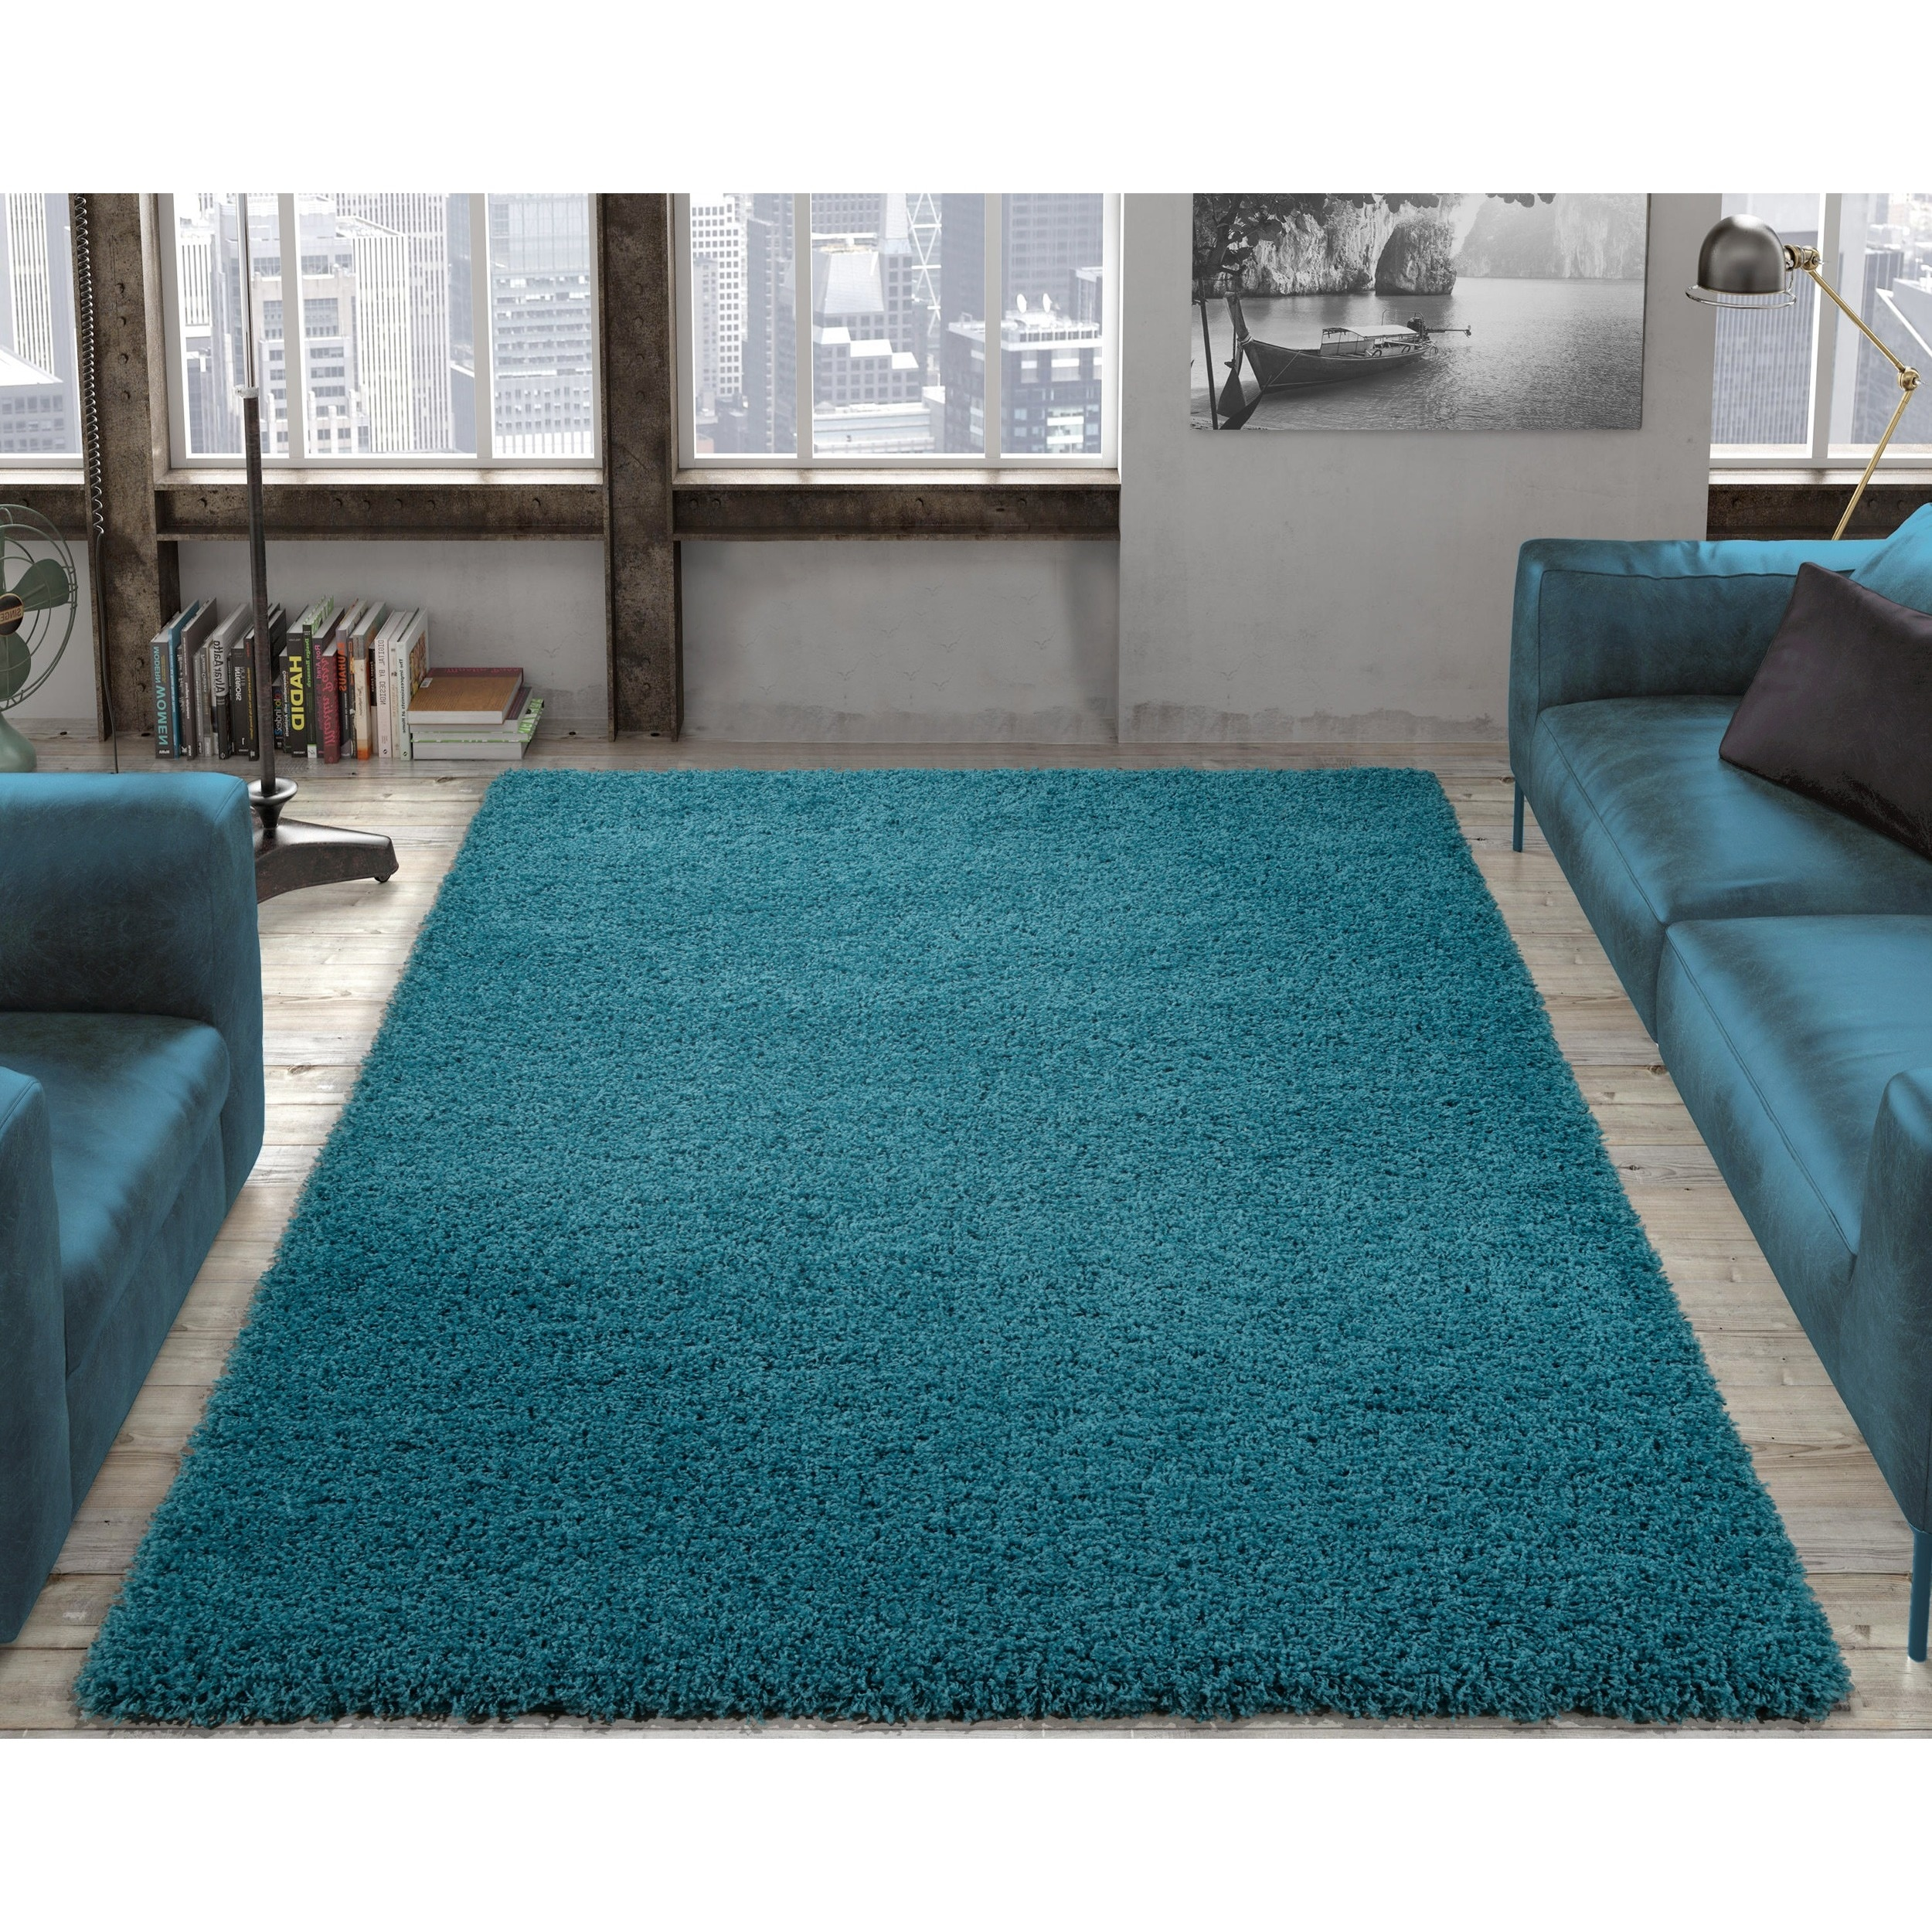 Blue, Solid Rugs & Area Rugs For Less | Find Great Home Decor Deals ...